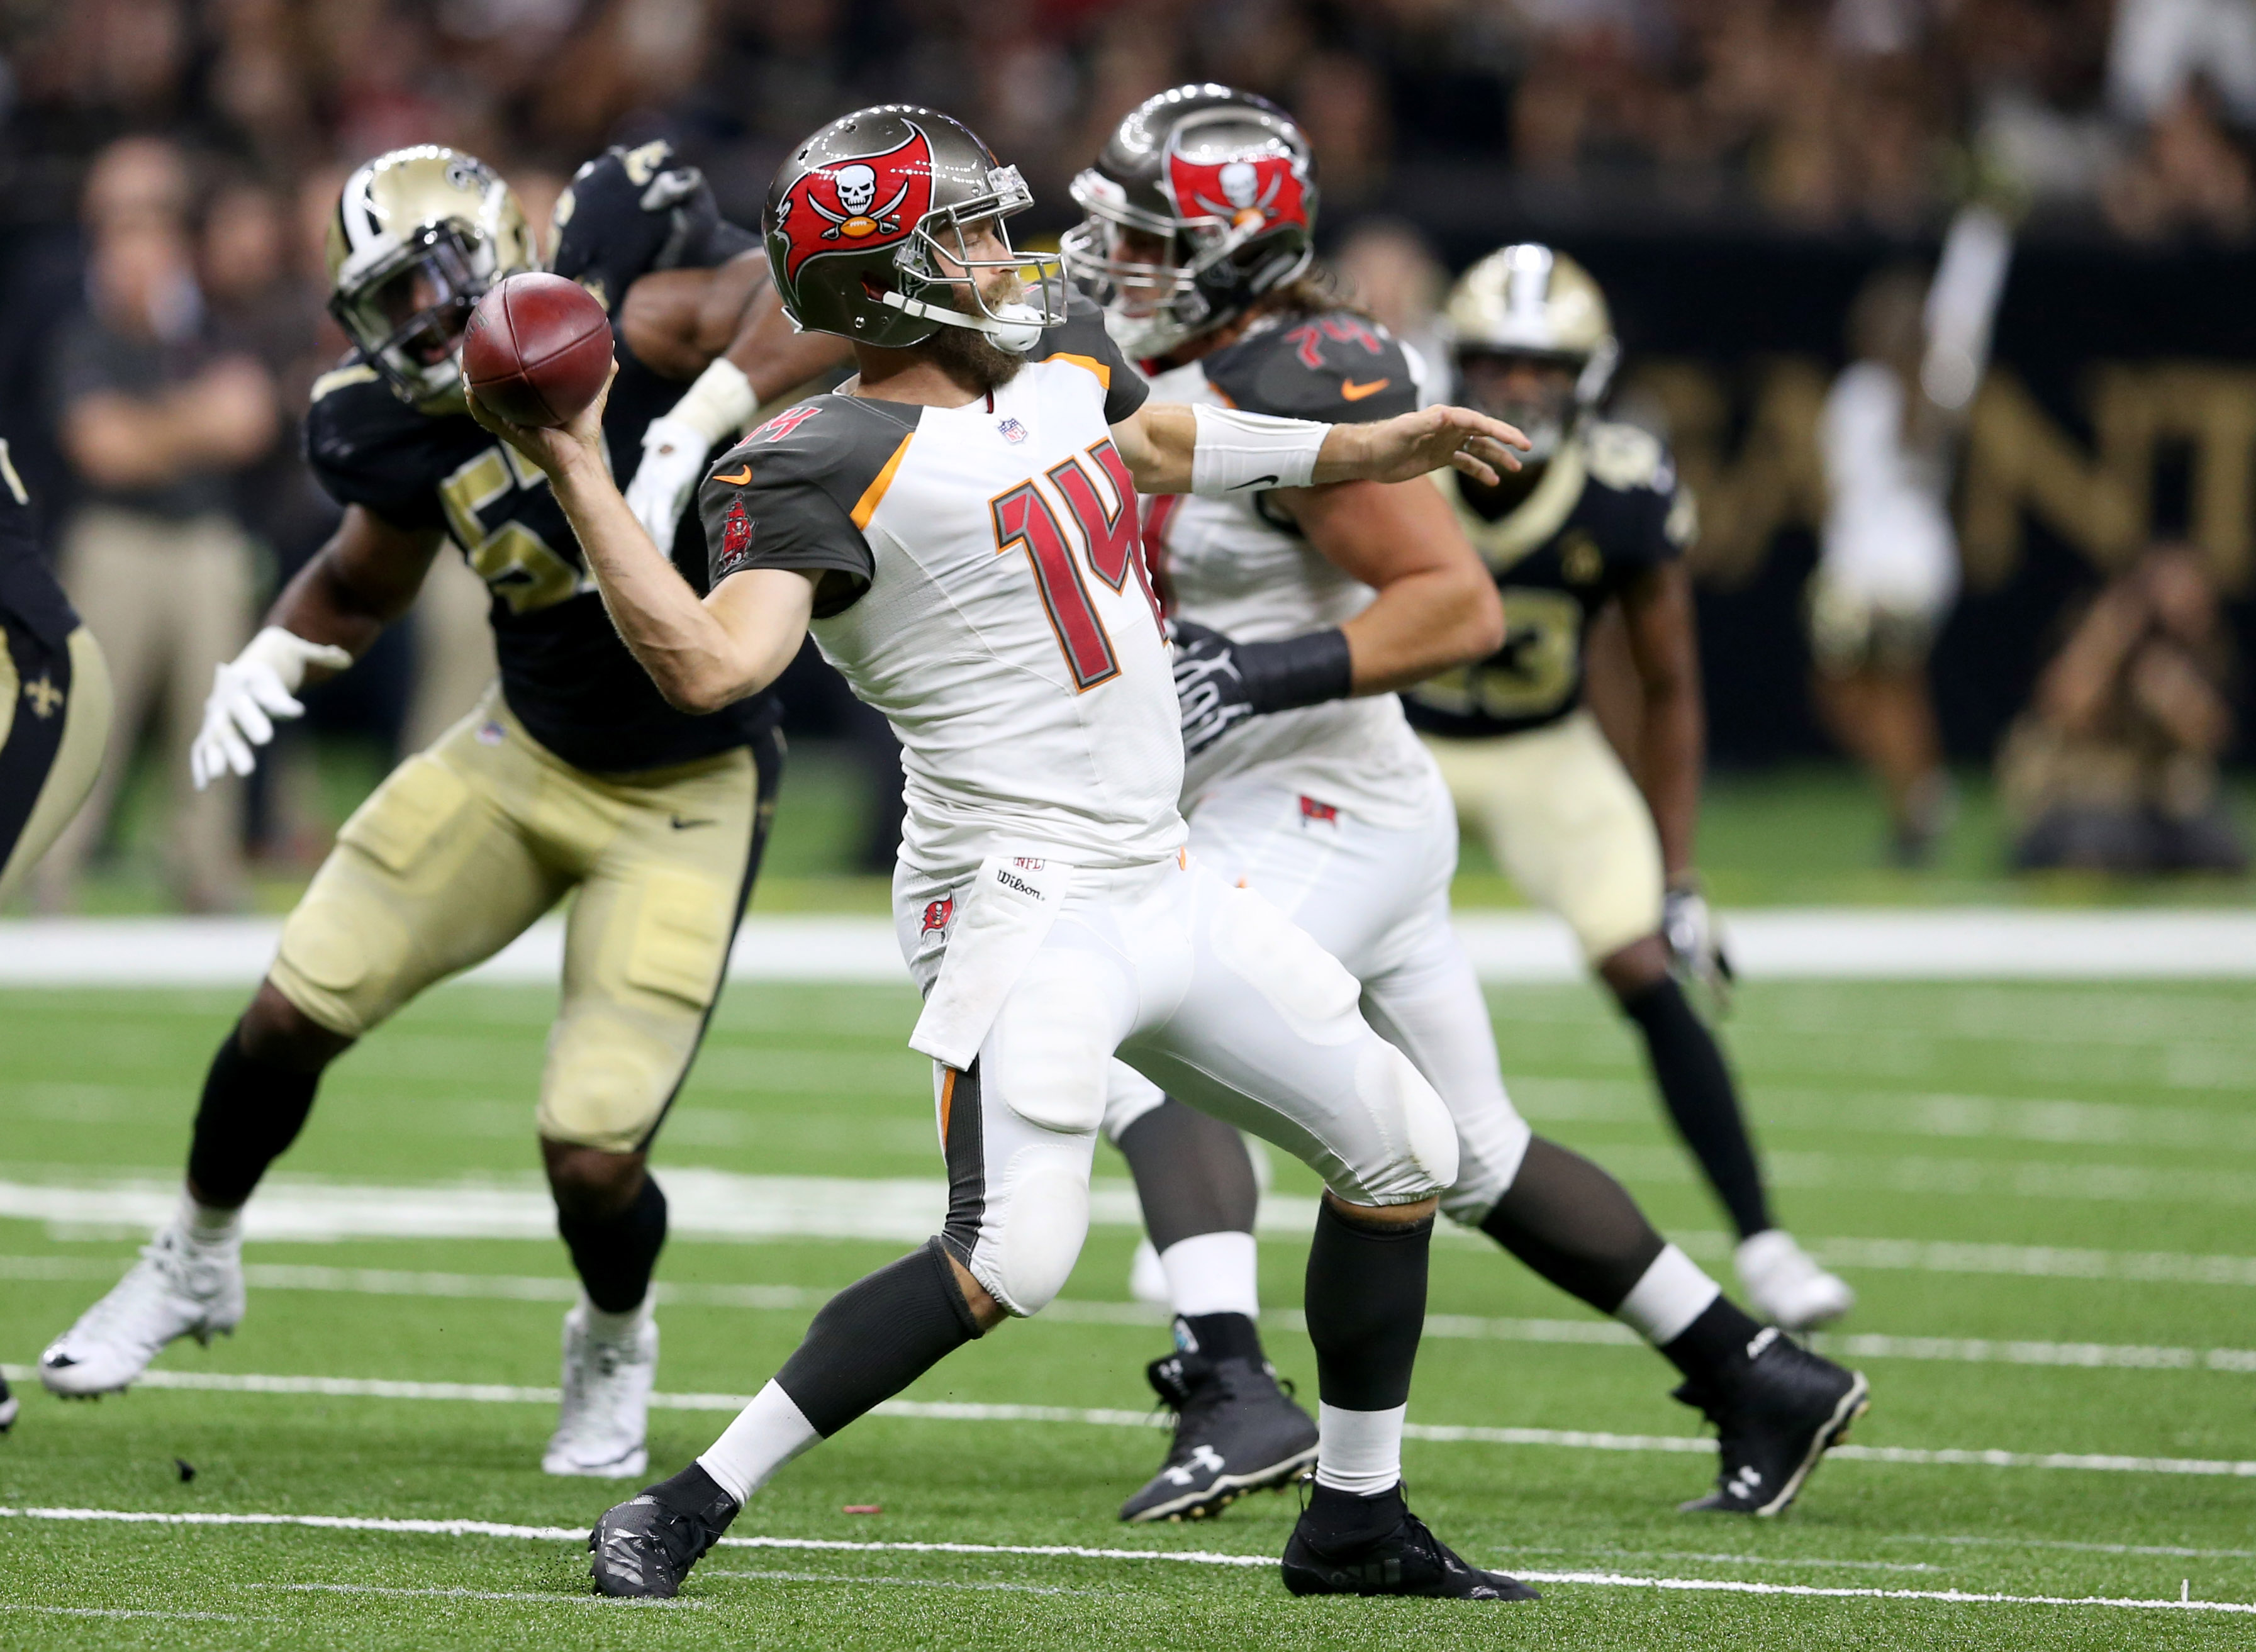 Sep 9, 2018; New Orleans, LA, USA; Tampa Bay Buccaneers quarterback Ryan Fitzpatrick (14) throws deep against the New Orleans Saints in the second half at the Mercedes-Benz Superdome. The Bucs won, 48-40. Mandatory Credit: Chuck Cook-USA TODAY Sports